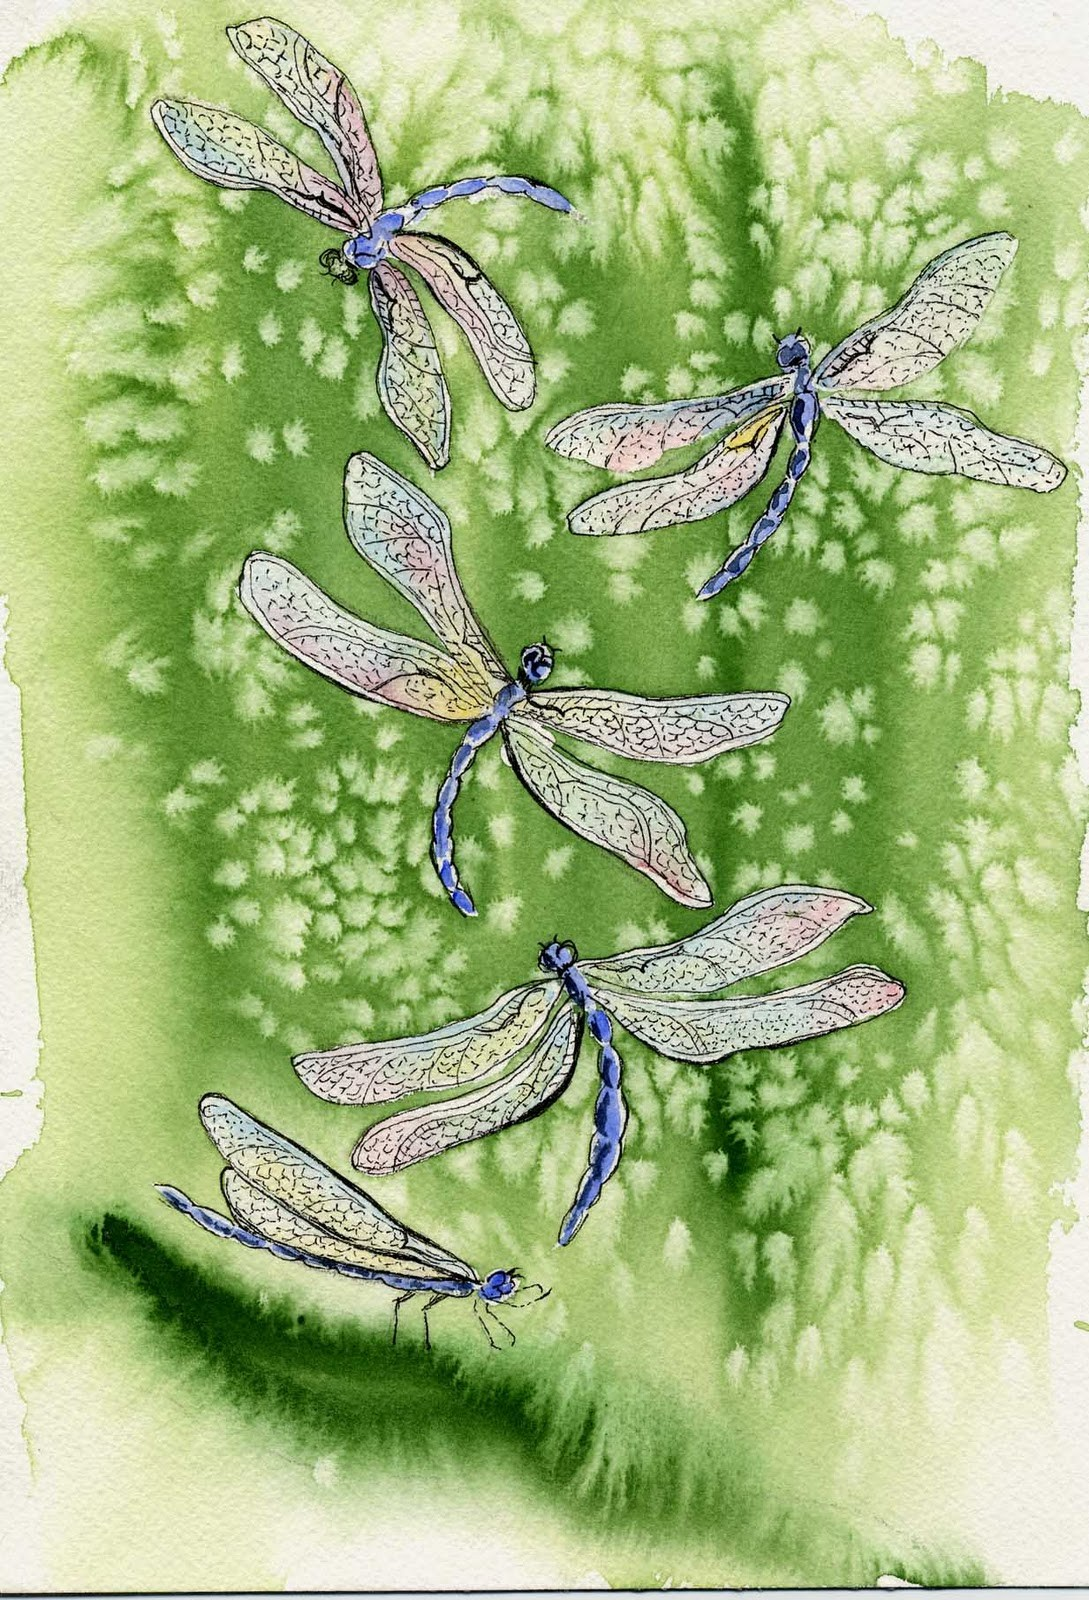 """Dragonfly Reality"" original fine art by Michelle Wolfe"